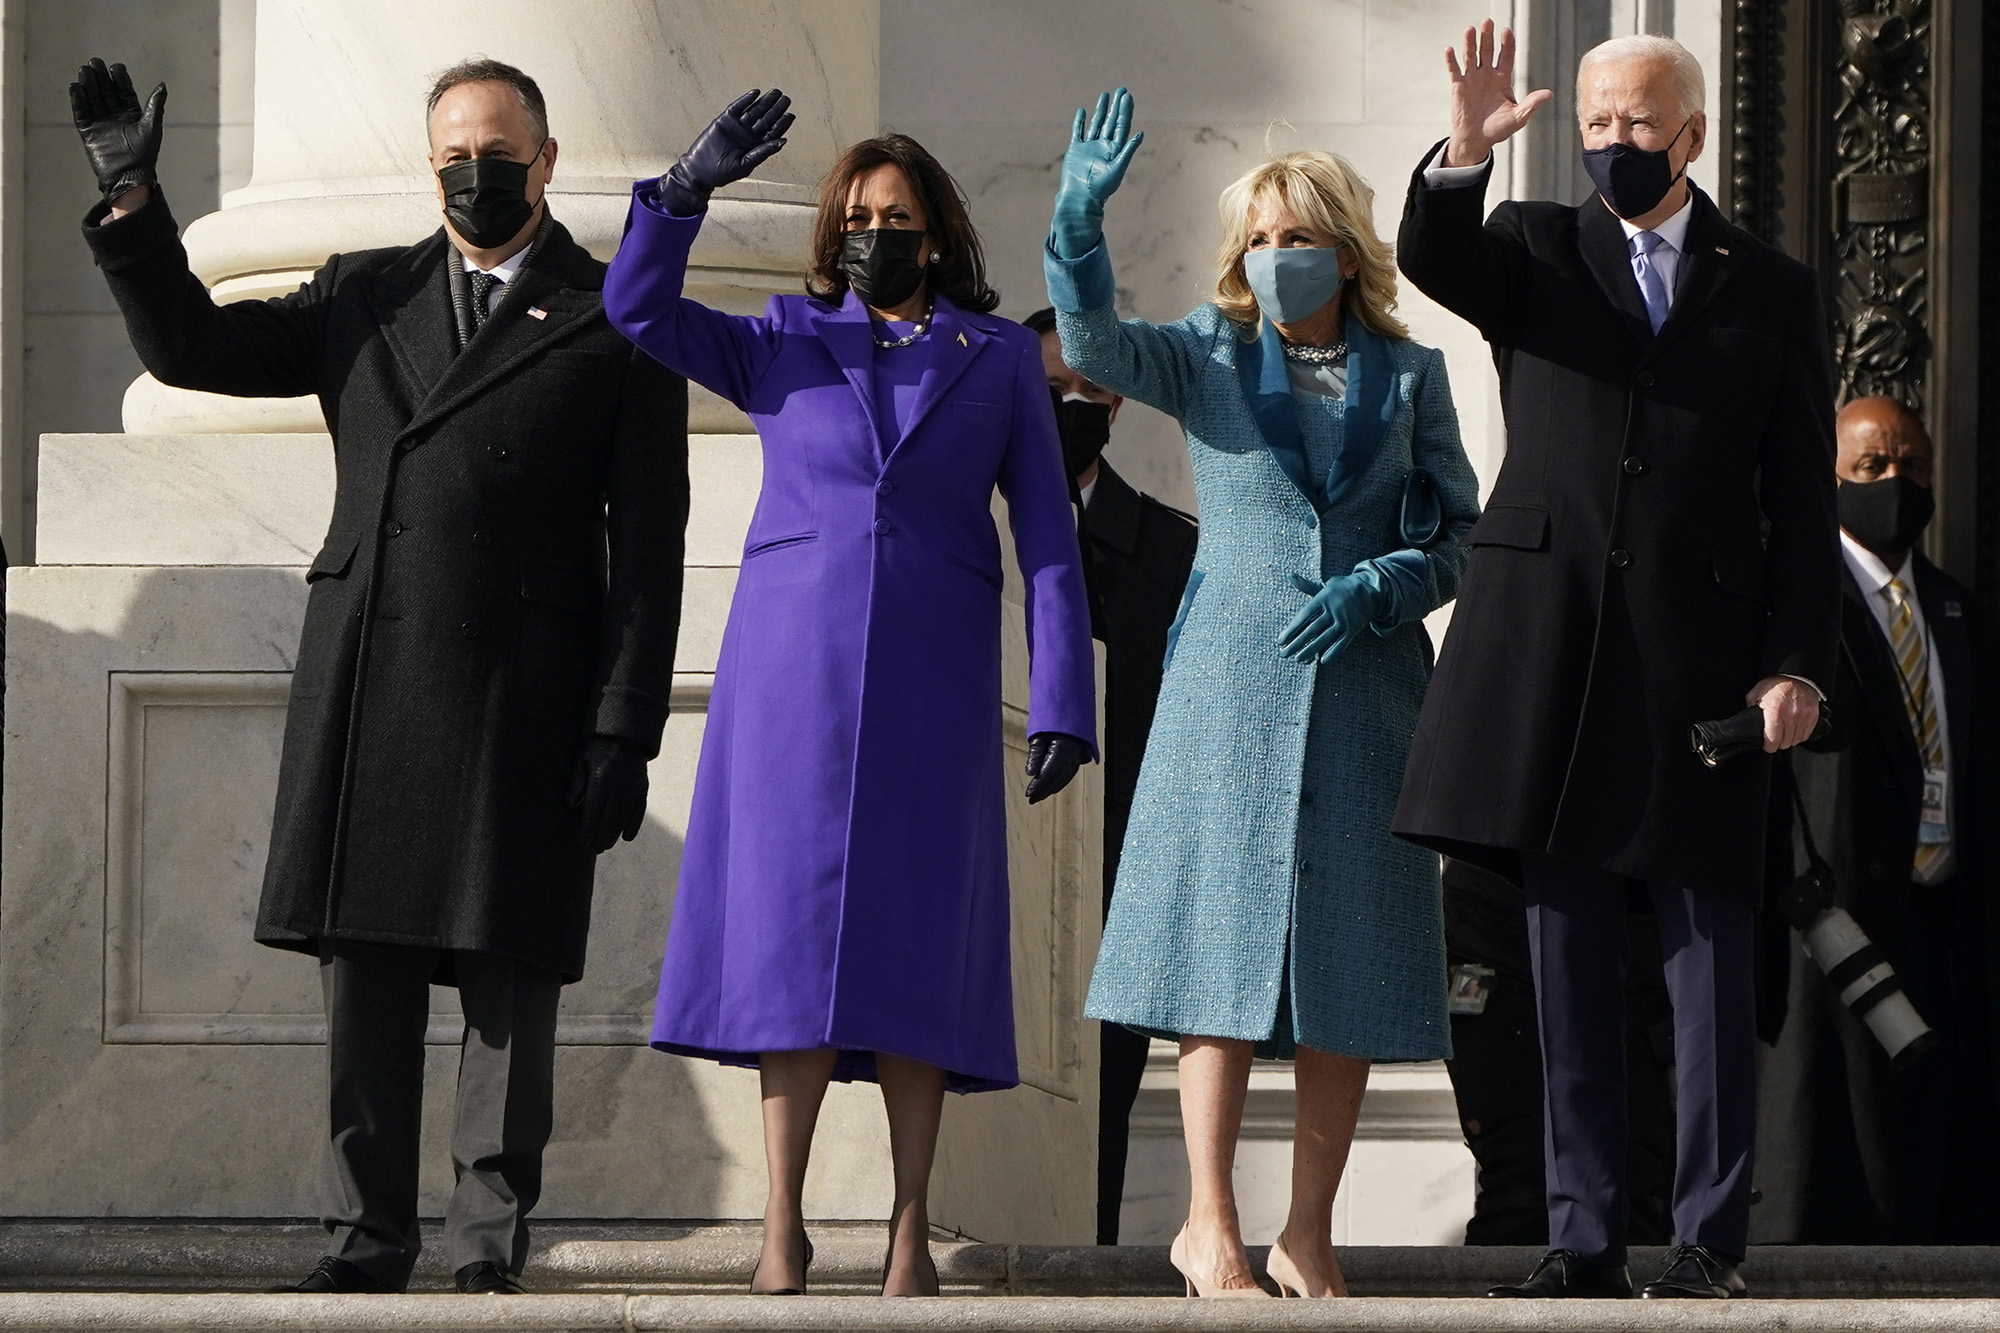 President-elect Joe Biden, his wife Jill Biden and Vice President-elect Kamala Harris and her husband Doug Emhoff arrive at the steps of the U.S. Capitol for the start of the official inauguration ceremonies, in Washington, Wednesday, Jan. 20, 2021. (J. Scott Applewhite/AP)